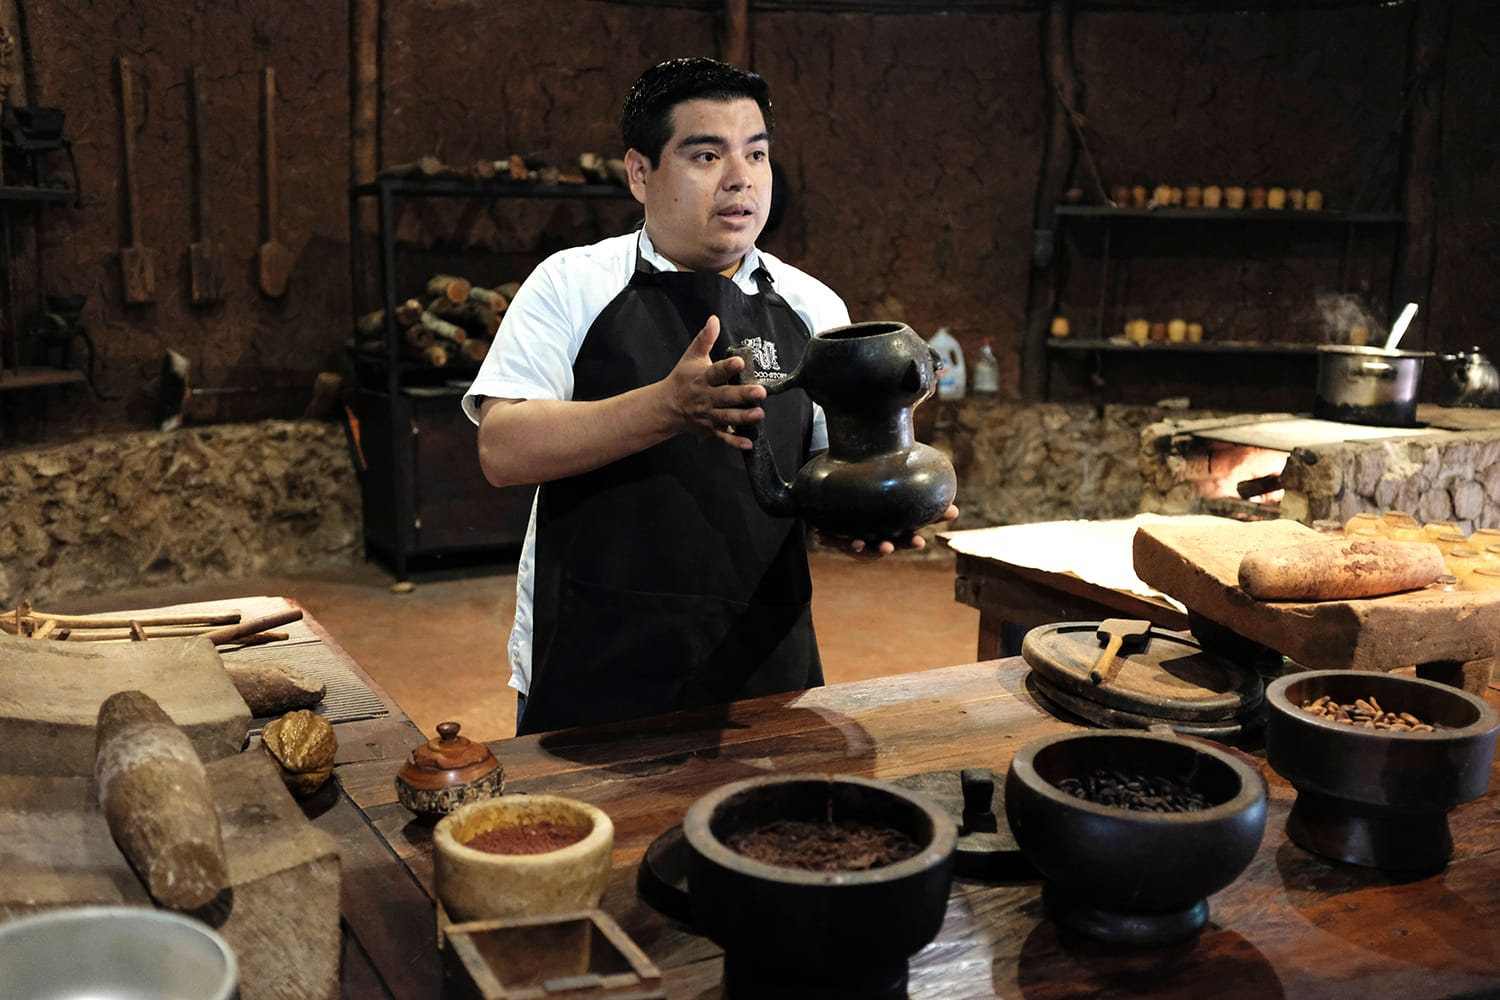 A local Mexican staff at the Chocolate museum explaining the process of how to make a Mayan chocolate drink from cocoa beans.